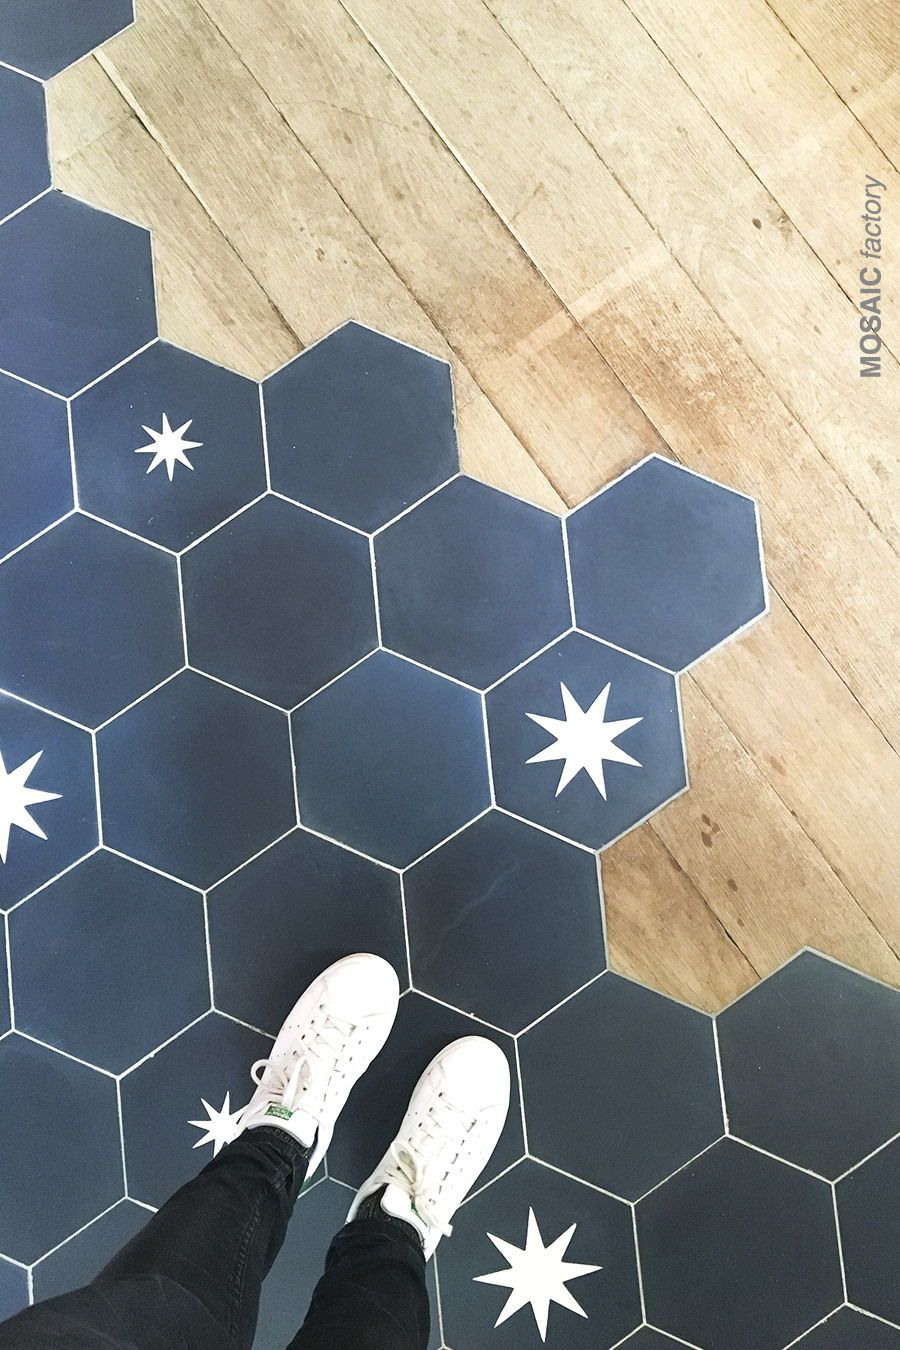 Beautiful Floor Transition Between Blue Hexagon Tiles And Wooden Floor Blue Plain And Star Patterned Cement T Hexagon Tiles Blue Tile Floor Wooden Floor Tiles